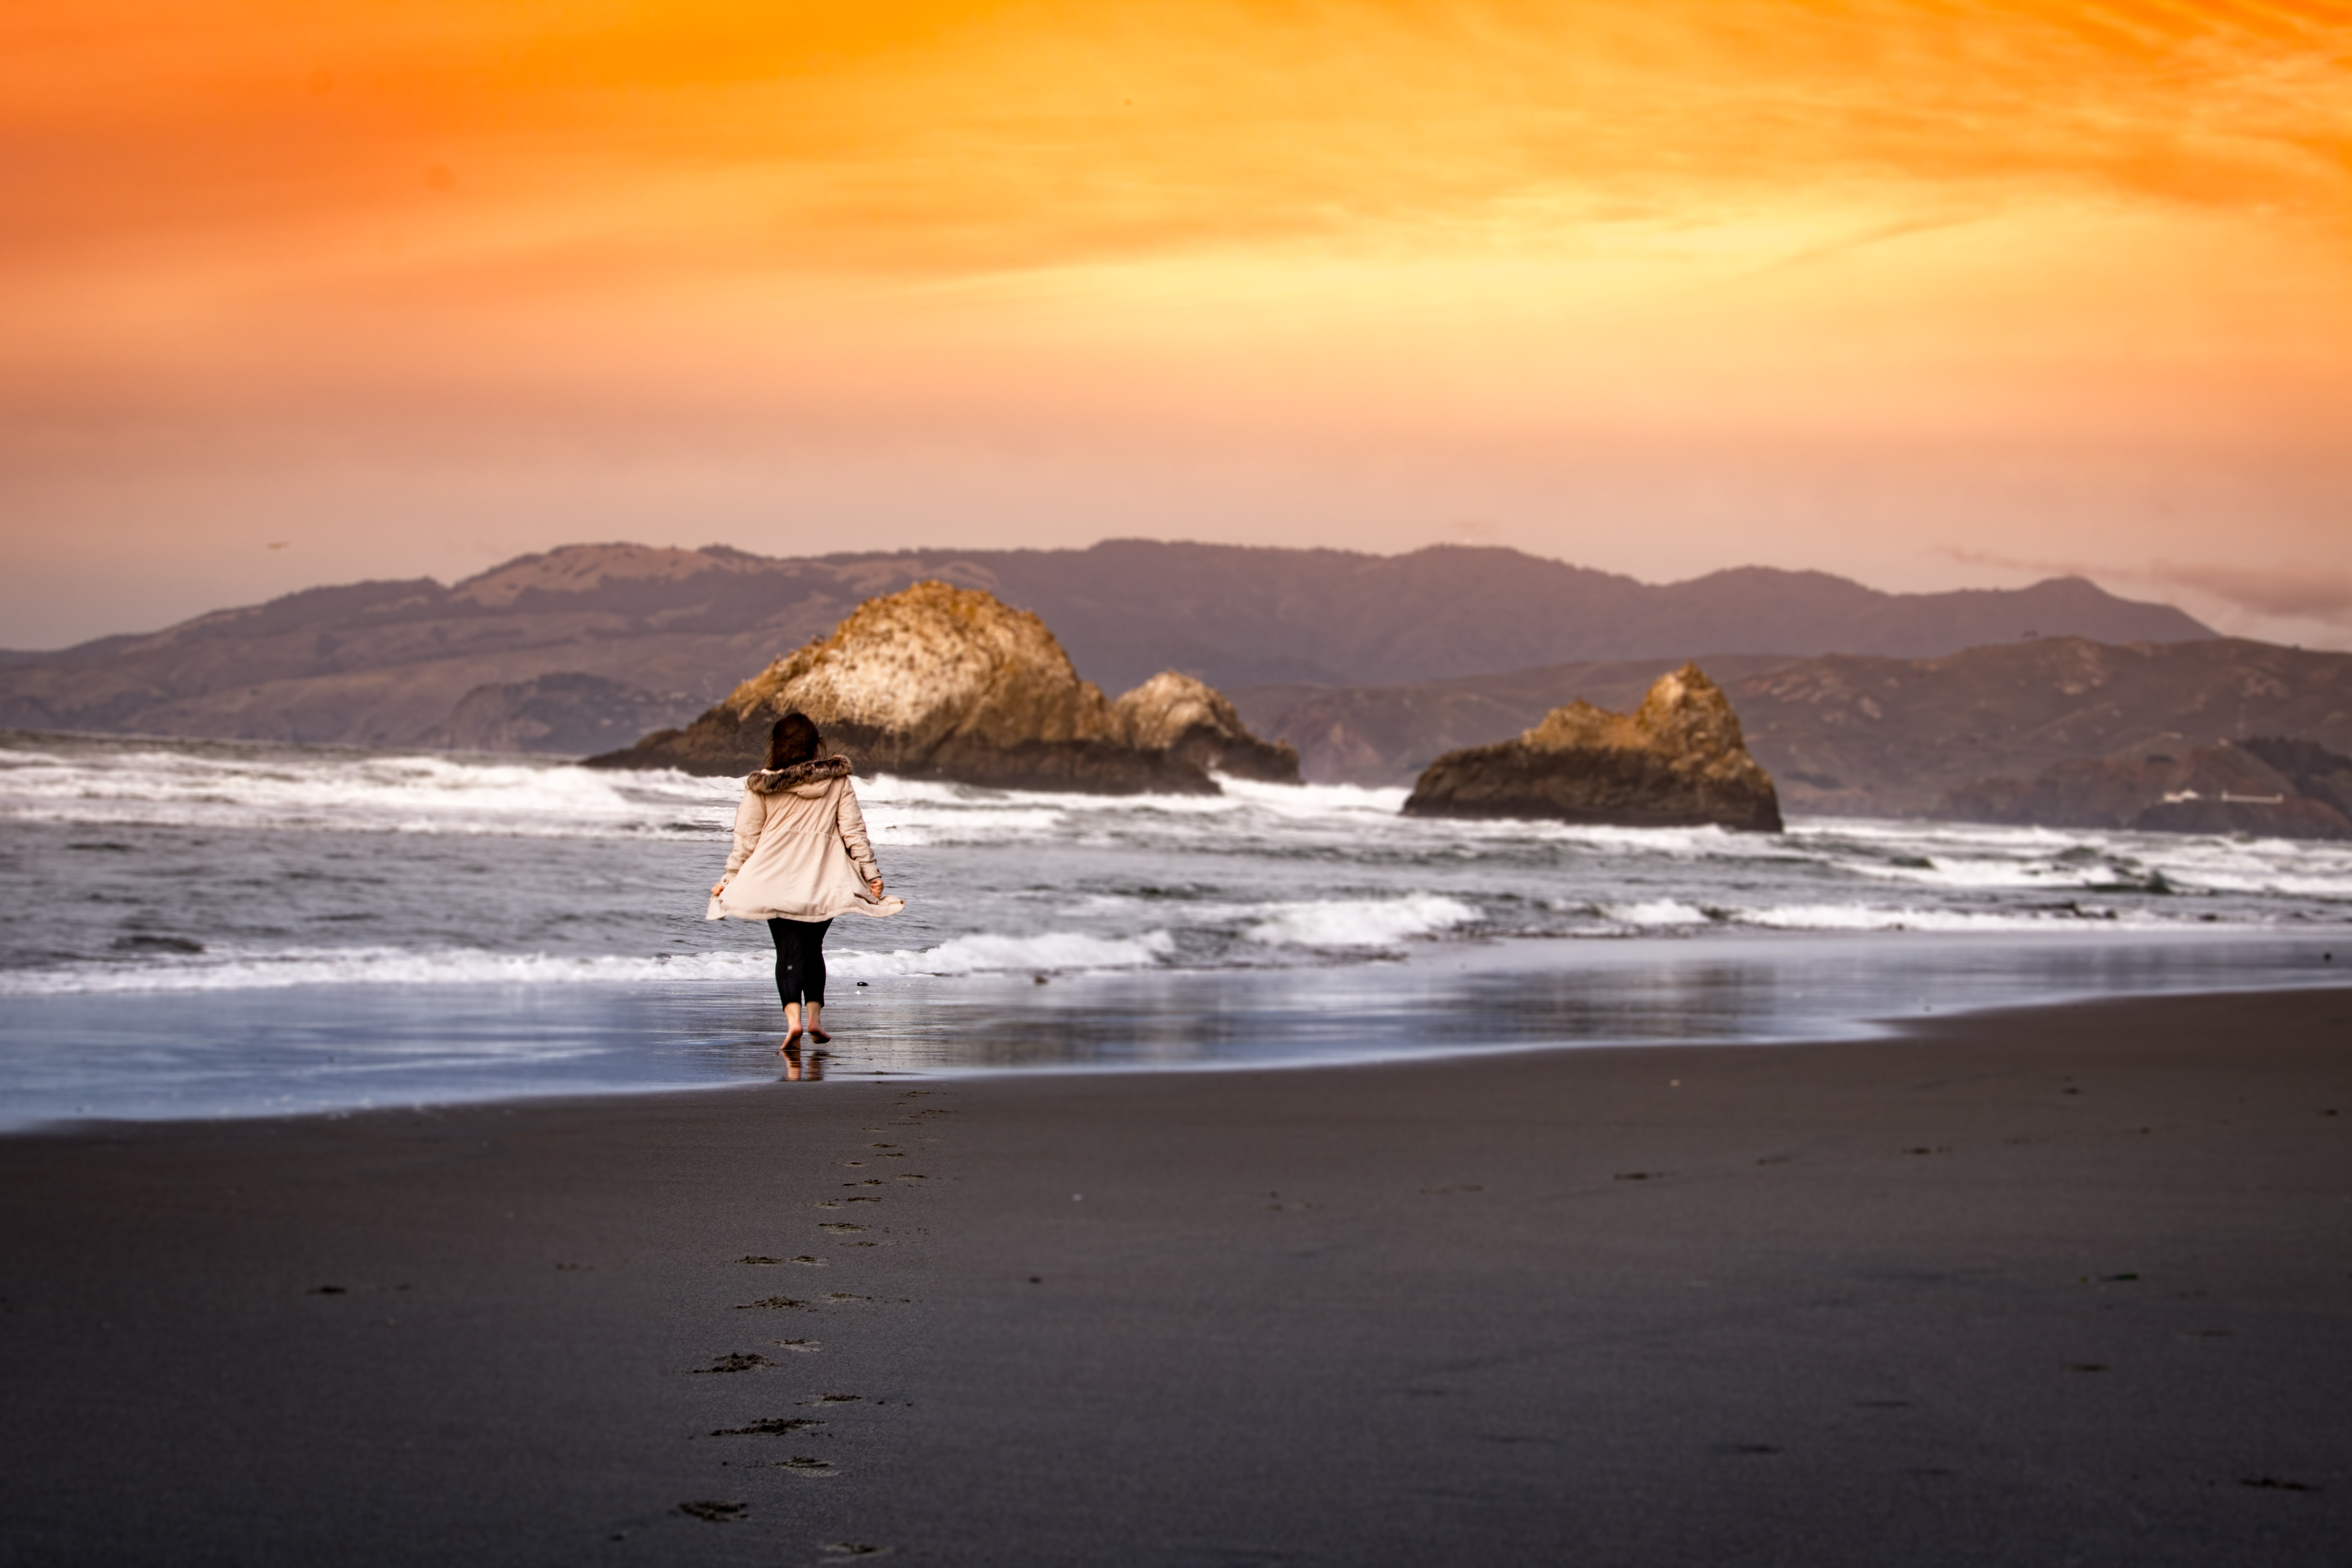 A woman walks across an empty beach as ocean waves crash on to the rocks and the sun sets in the sky